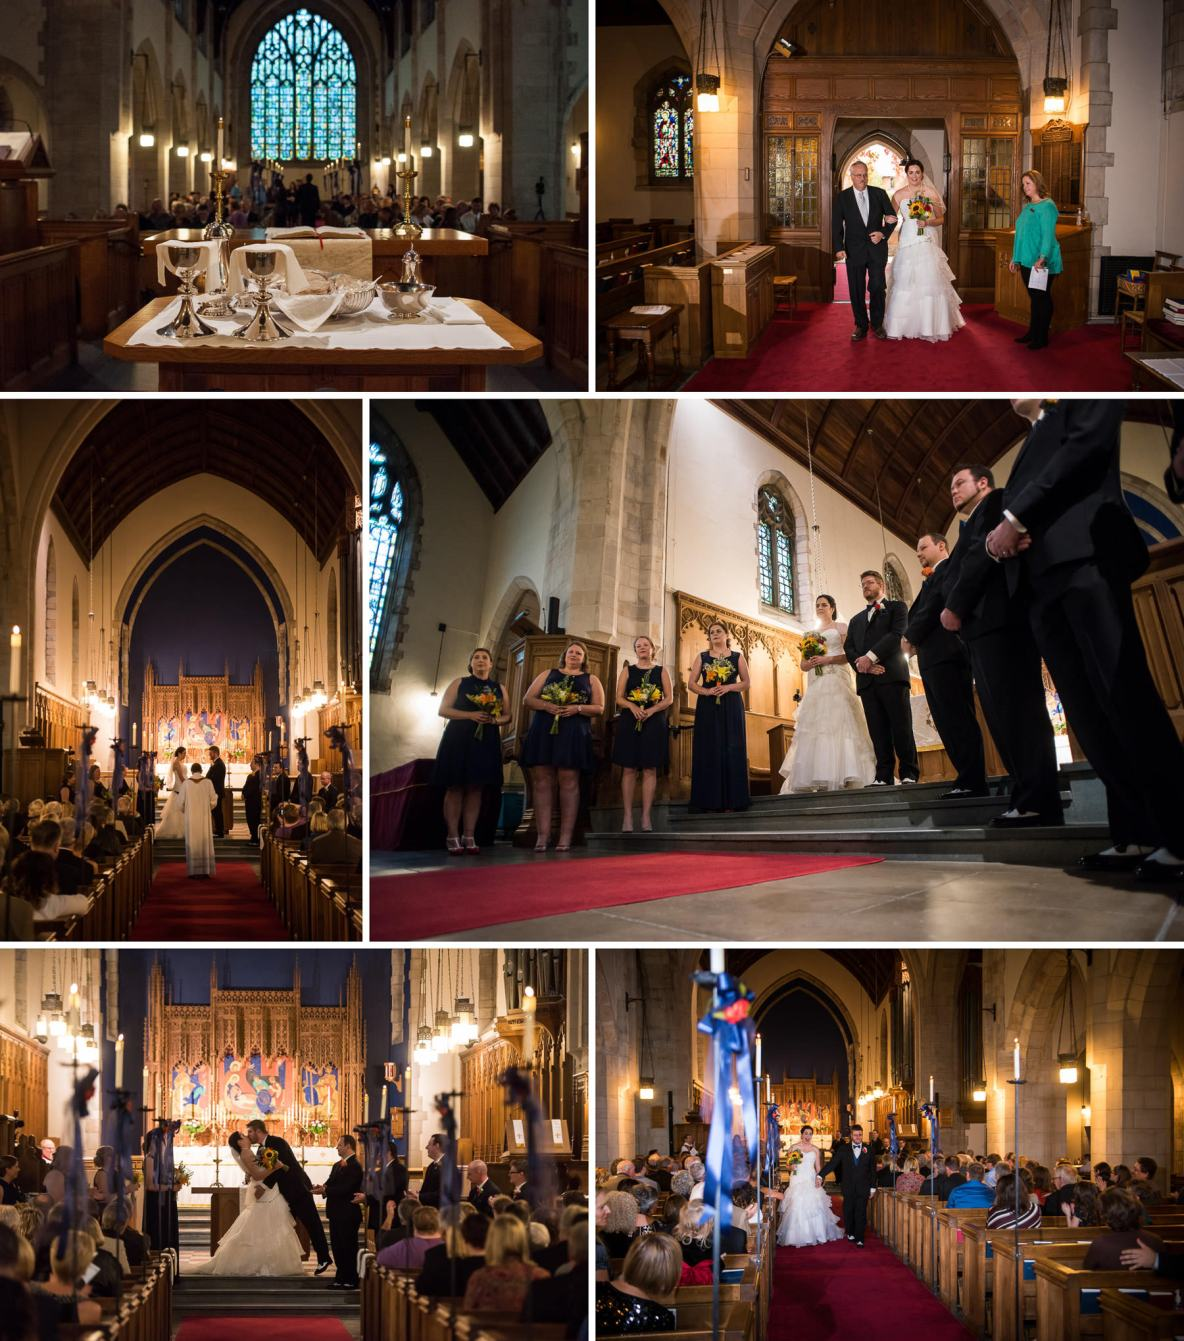 Photos of the wedding ceremony inside candle lit church.